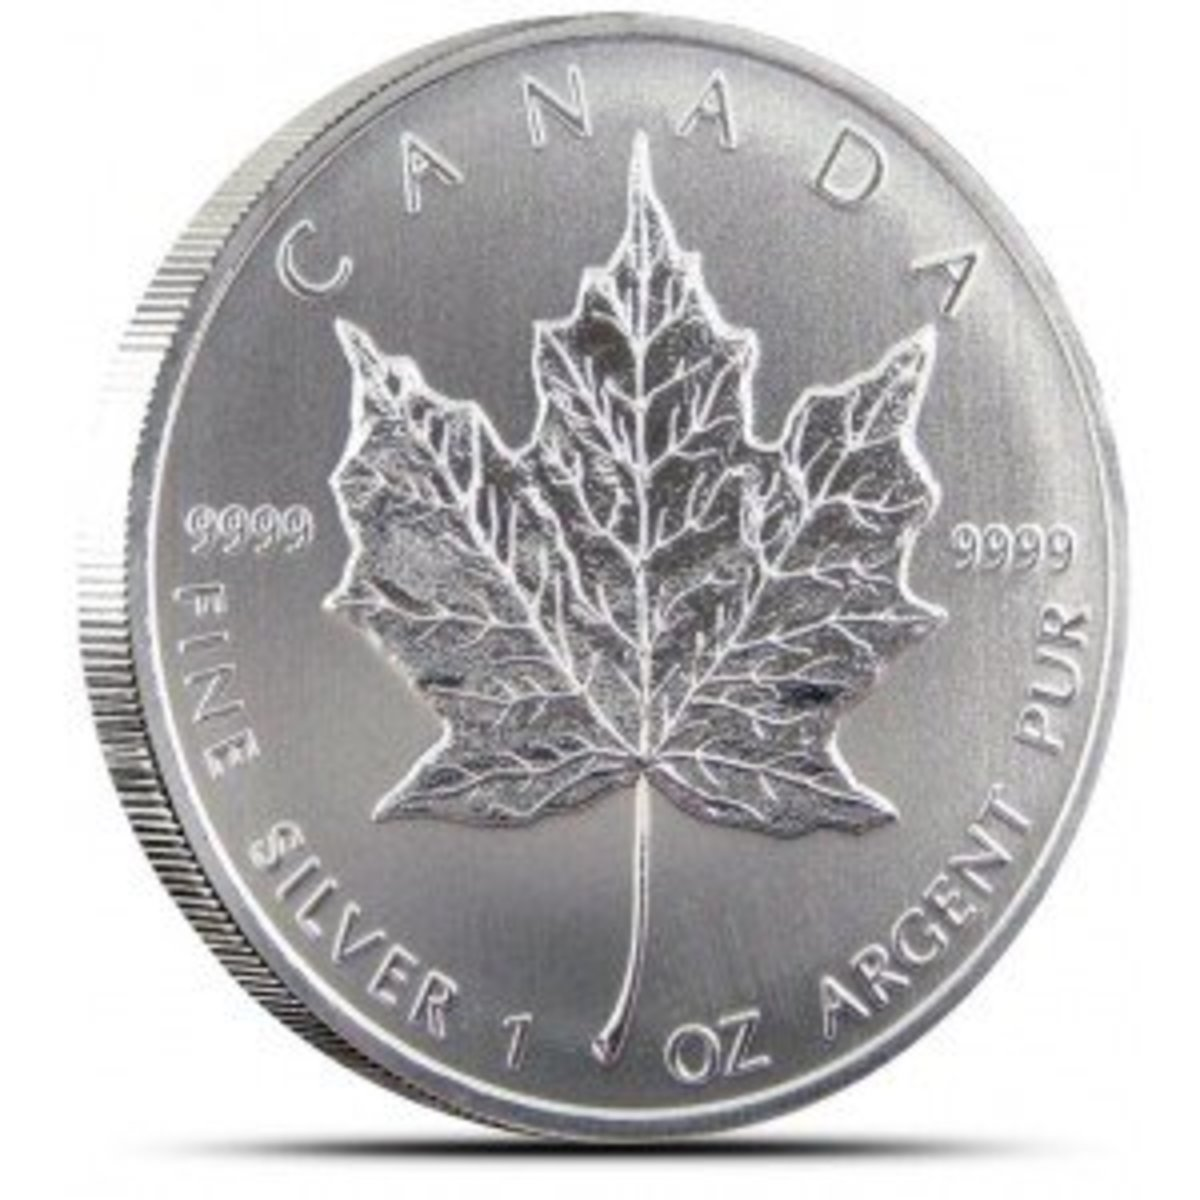 Silver Maple Leaf from Canada that is 99.99% silver